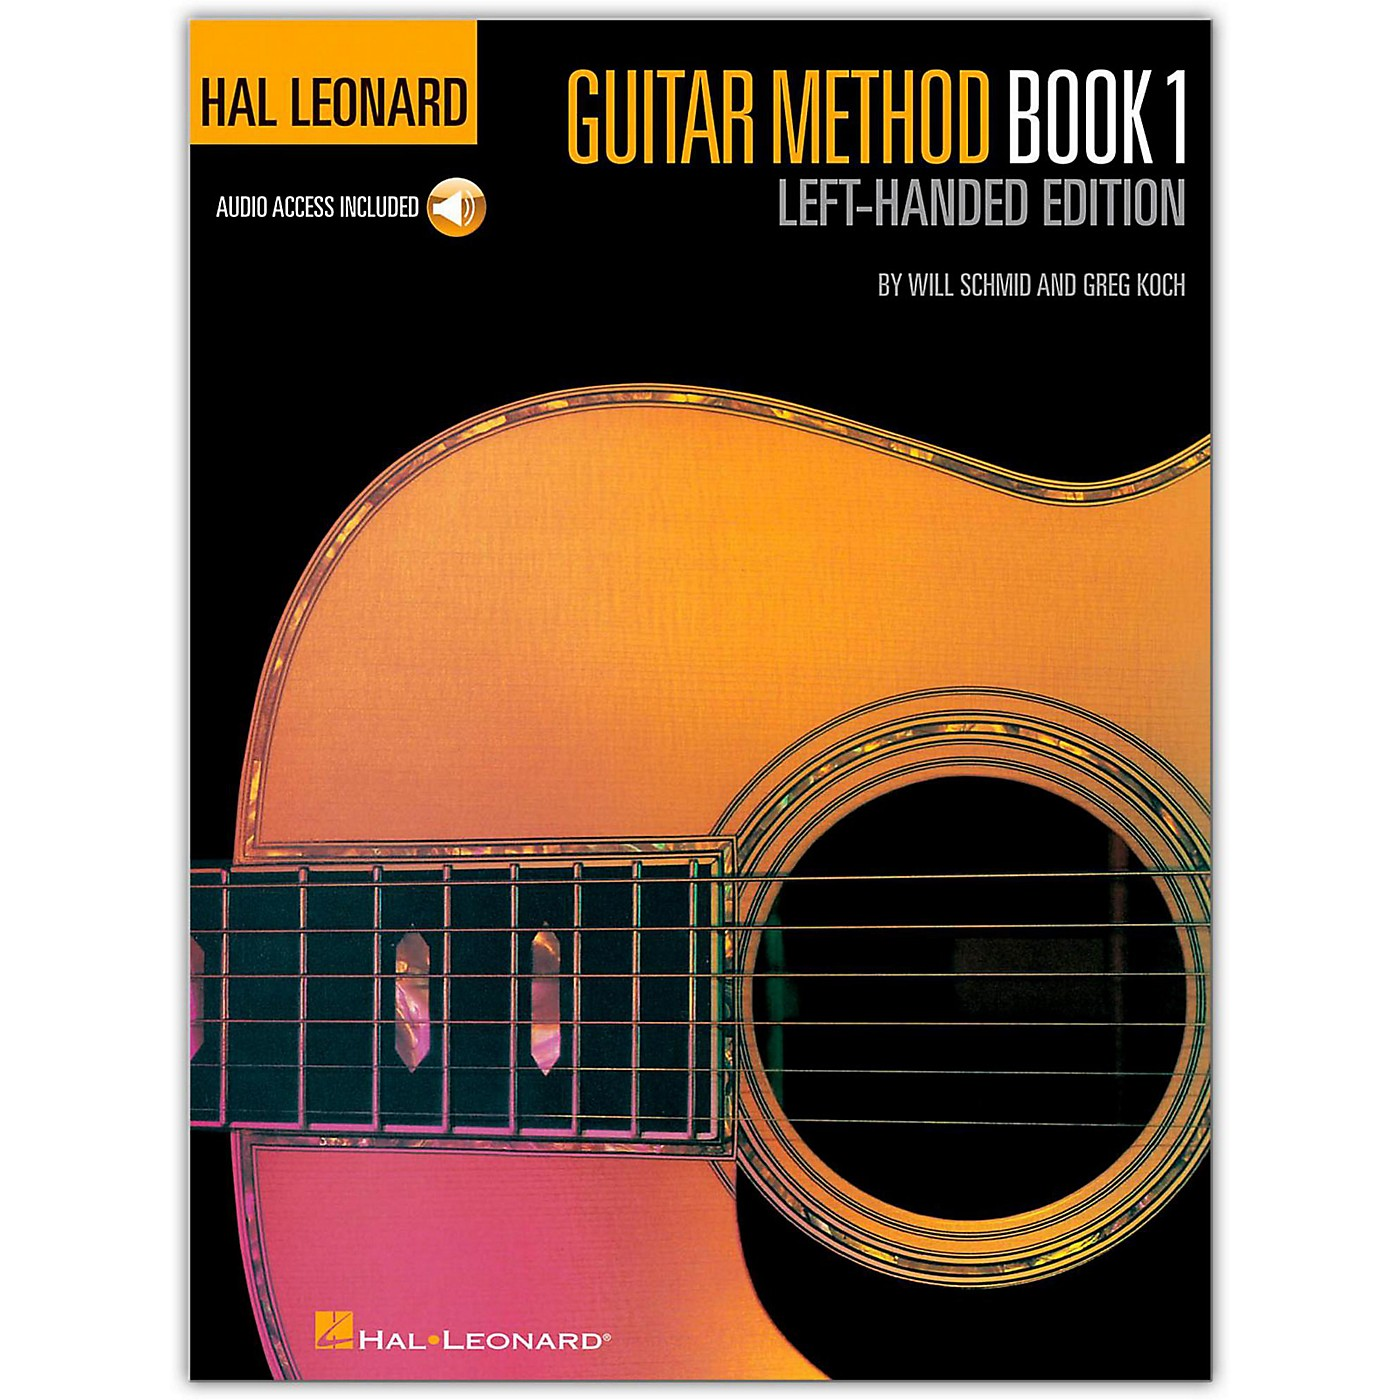 Hal Leonard Guitar Method Book 1 Left-Handed Edition (Book/Online Audio) thumbnail